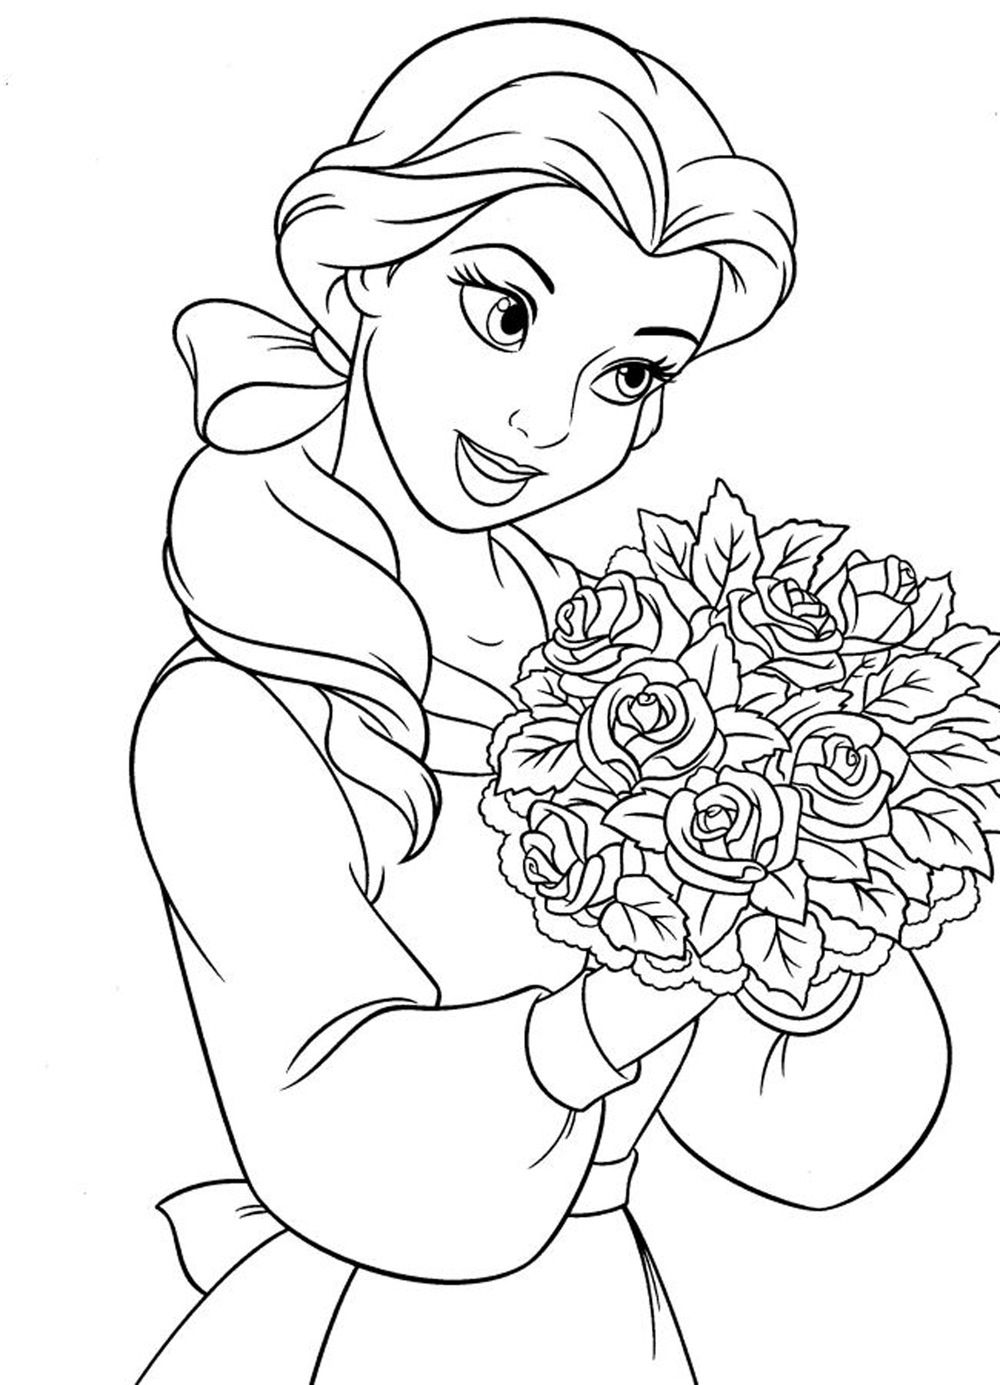 colouring picture of girl little girl coloring page girl of picture colouring